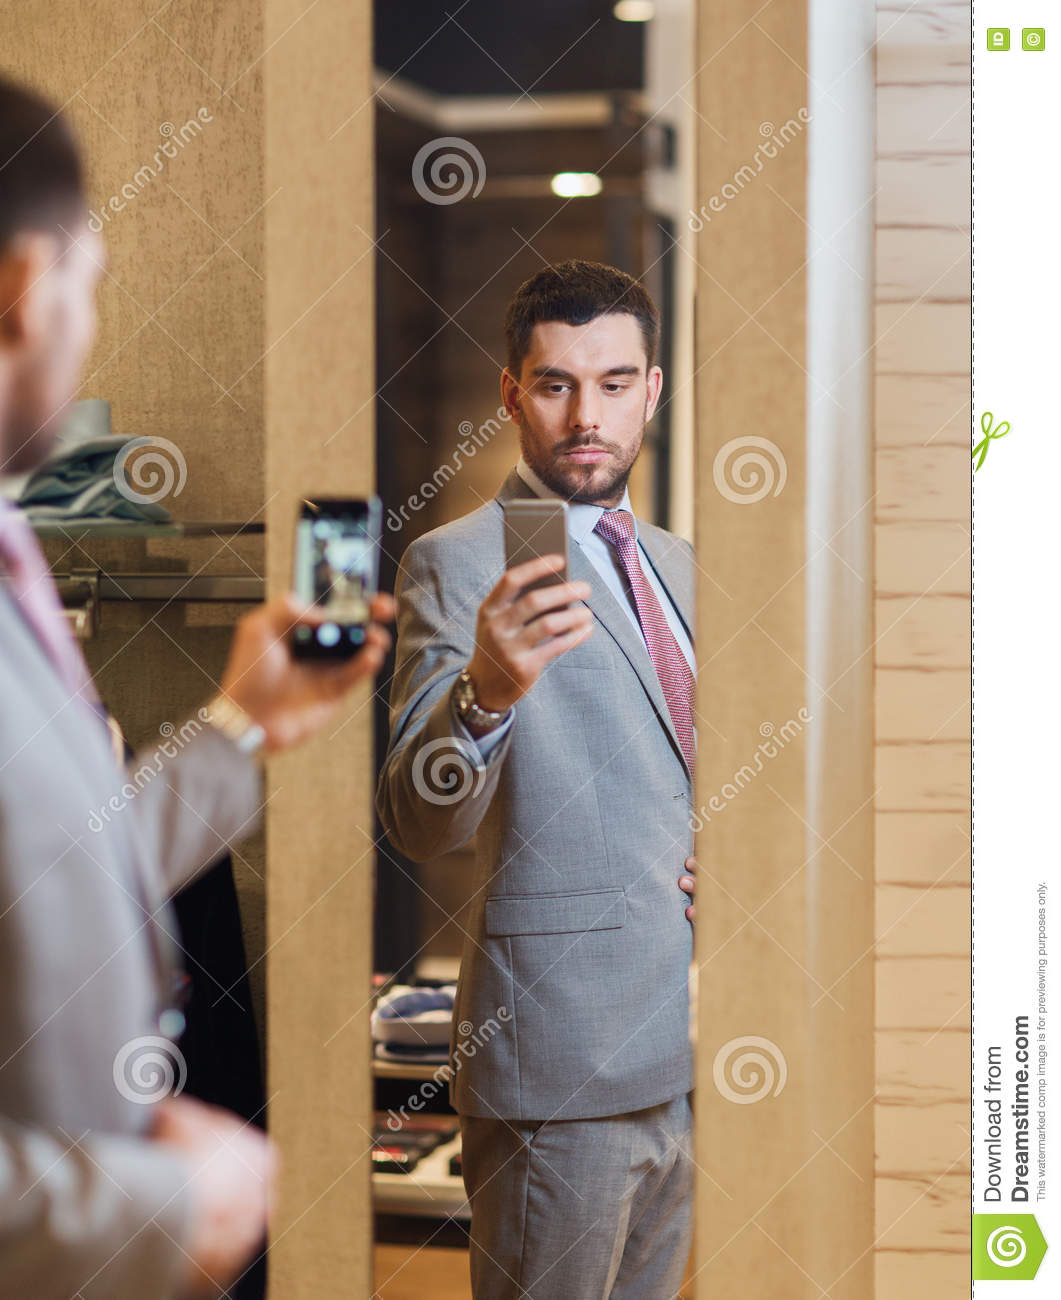 how to hold your phone when taking a mirror selfie